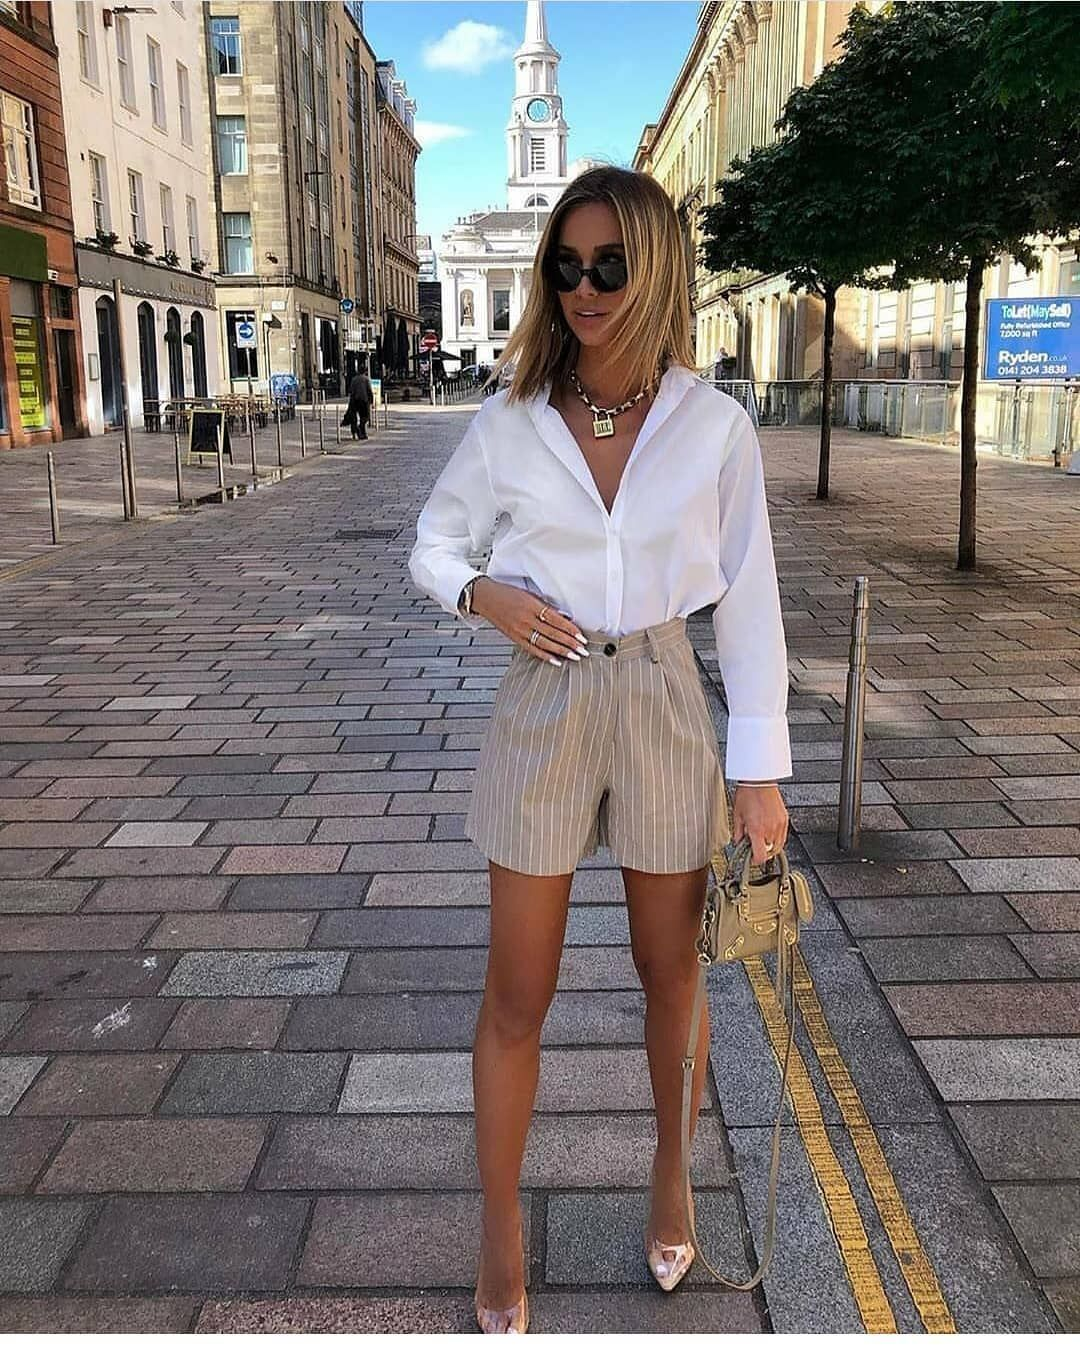 35 Trendy Casual Outfits Ideas For Girls In 2020 Spring #Trendy #For #Ideas